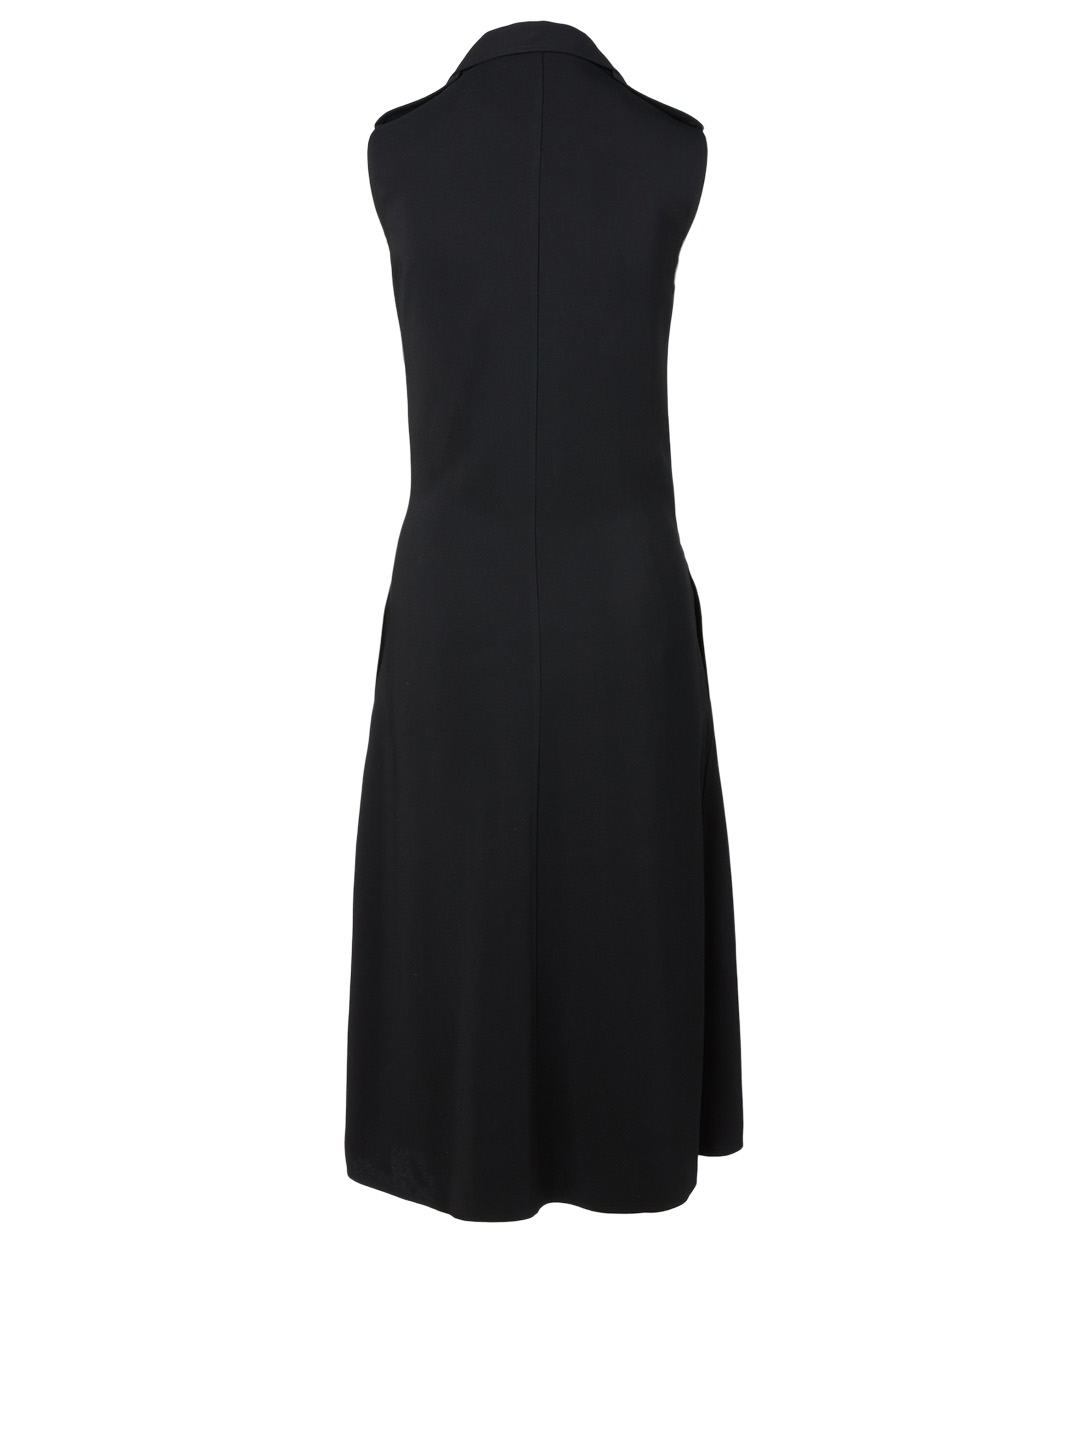 VICTORIA BECKHAM Midi Dress With Belt Women's Black